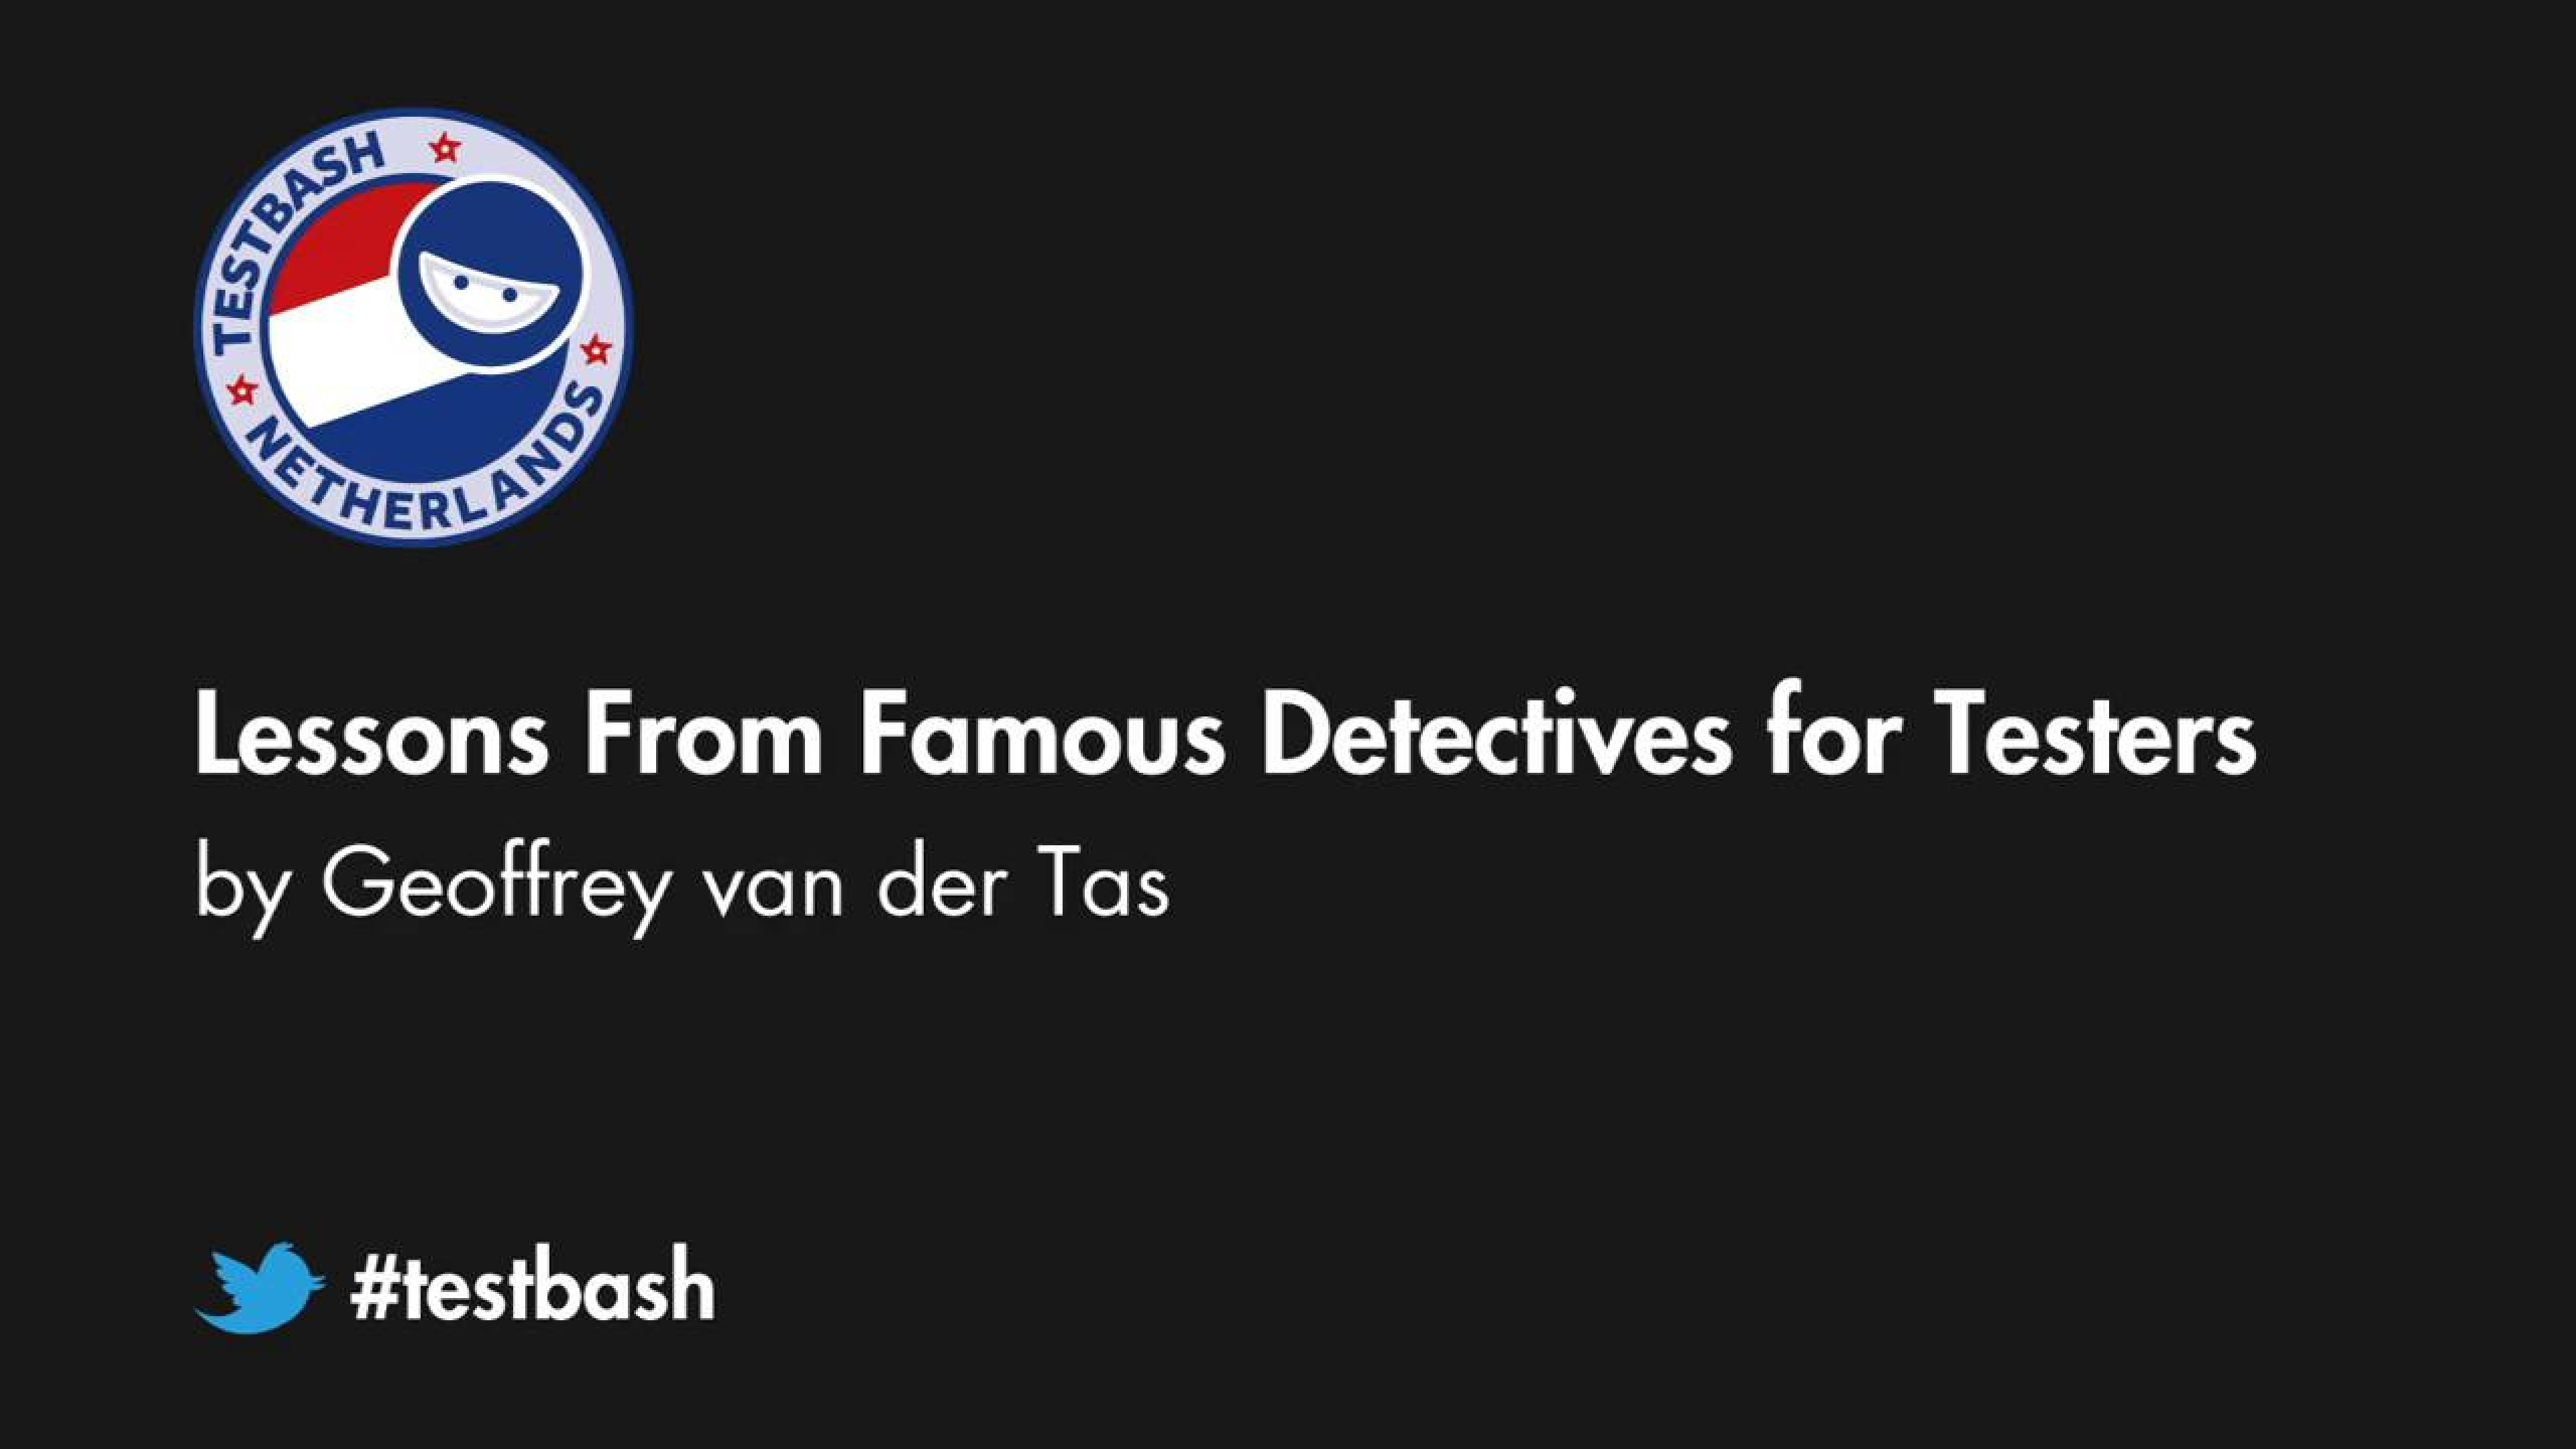 Lessons From Famous Detectives for Testers - Geoffrey van der Tas